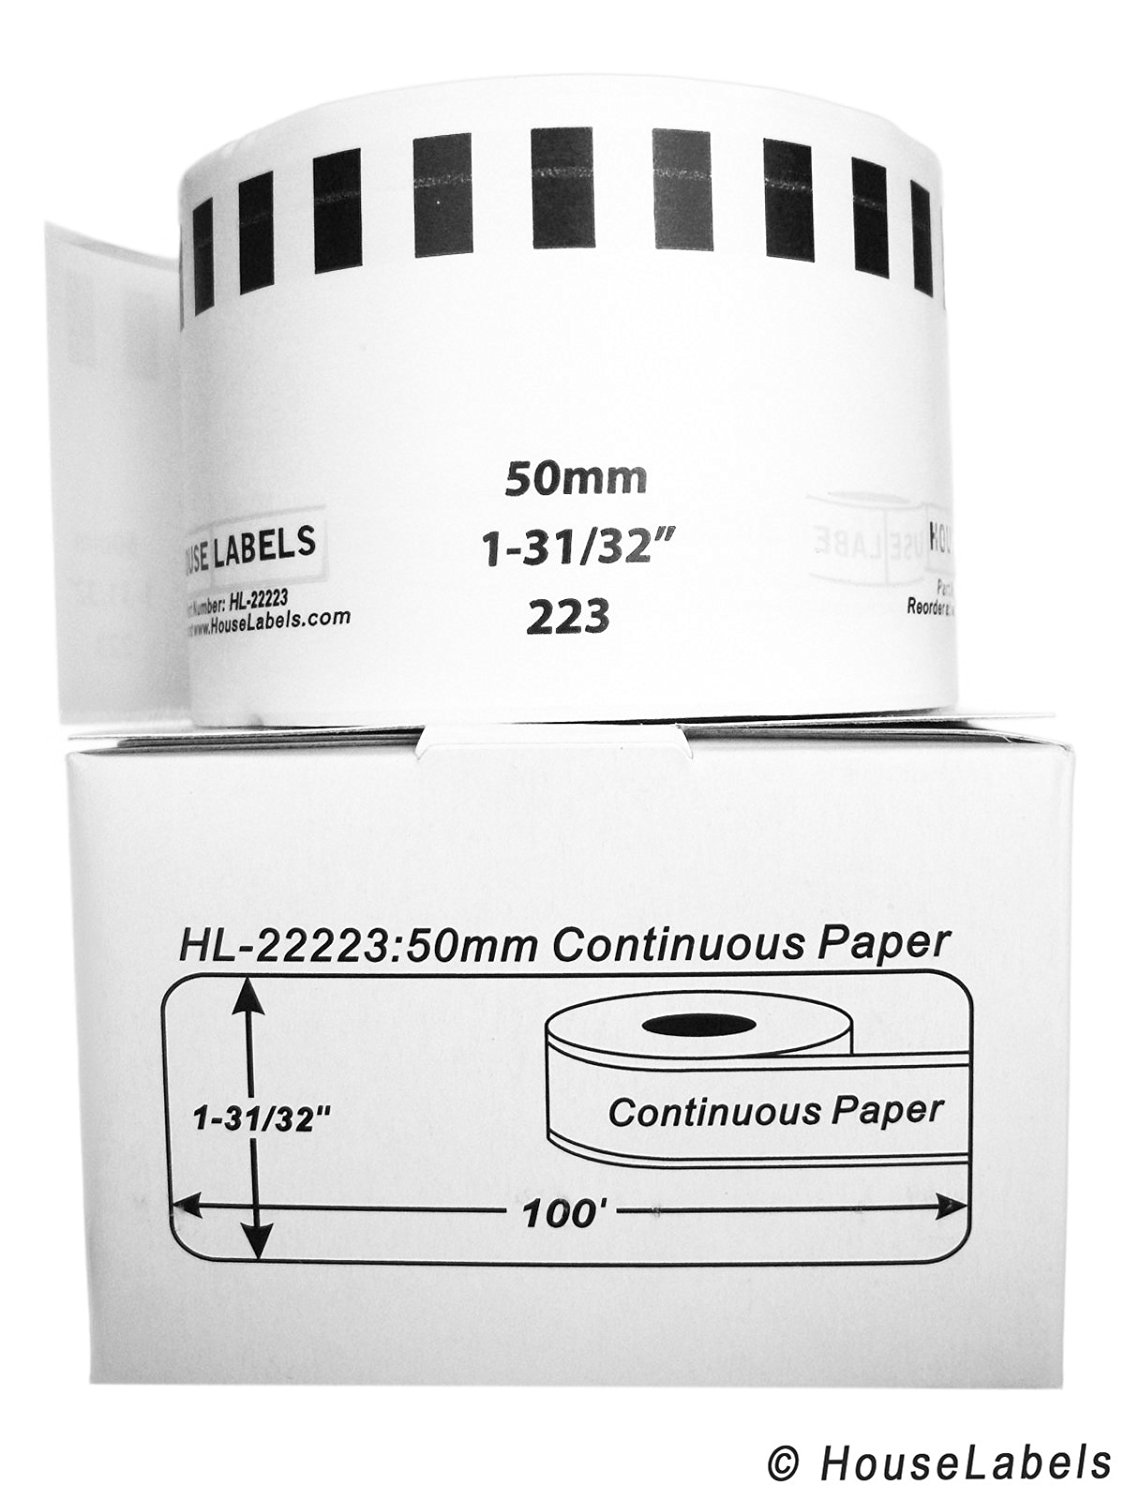 "100 Rolls; Continuous Paper, BROTHER-Compatible DK-2223 Continuous Paper Labels (1-31/32"" x 100'; 50mm30.48m) -- BPA Free!"